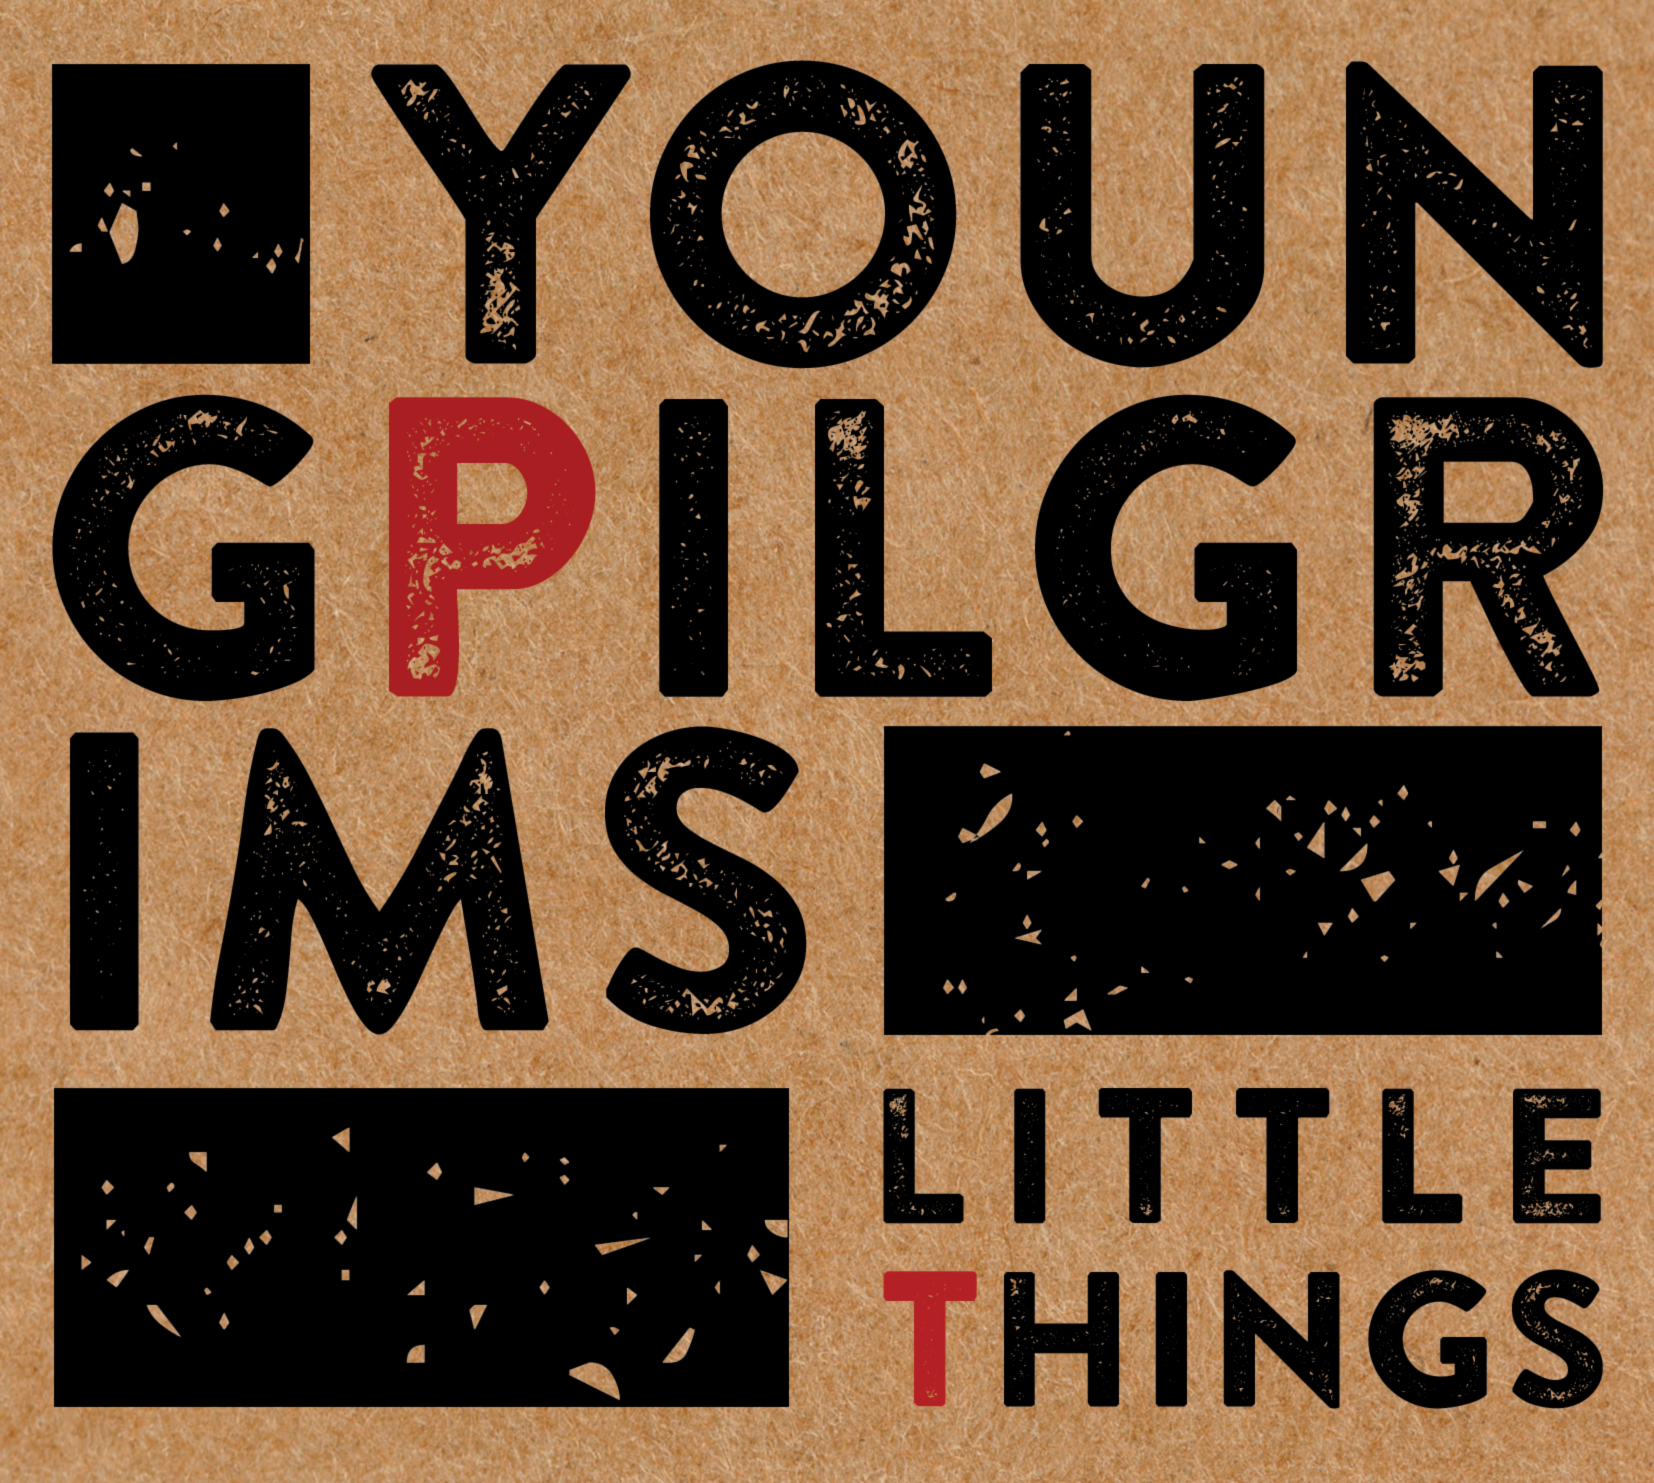 Young Pilgrims Little Things cover Stoney Lane Records